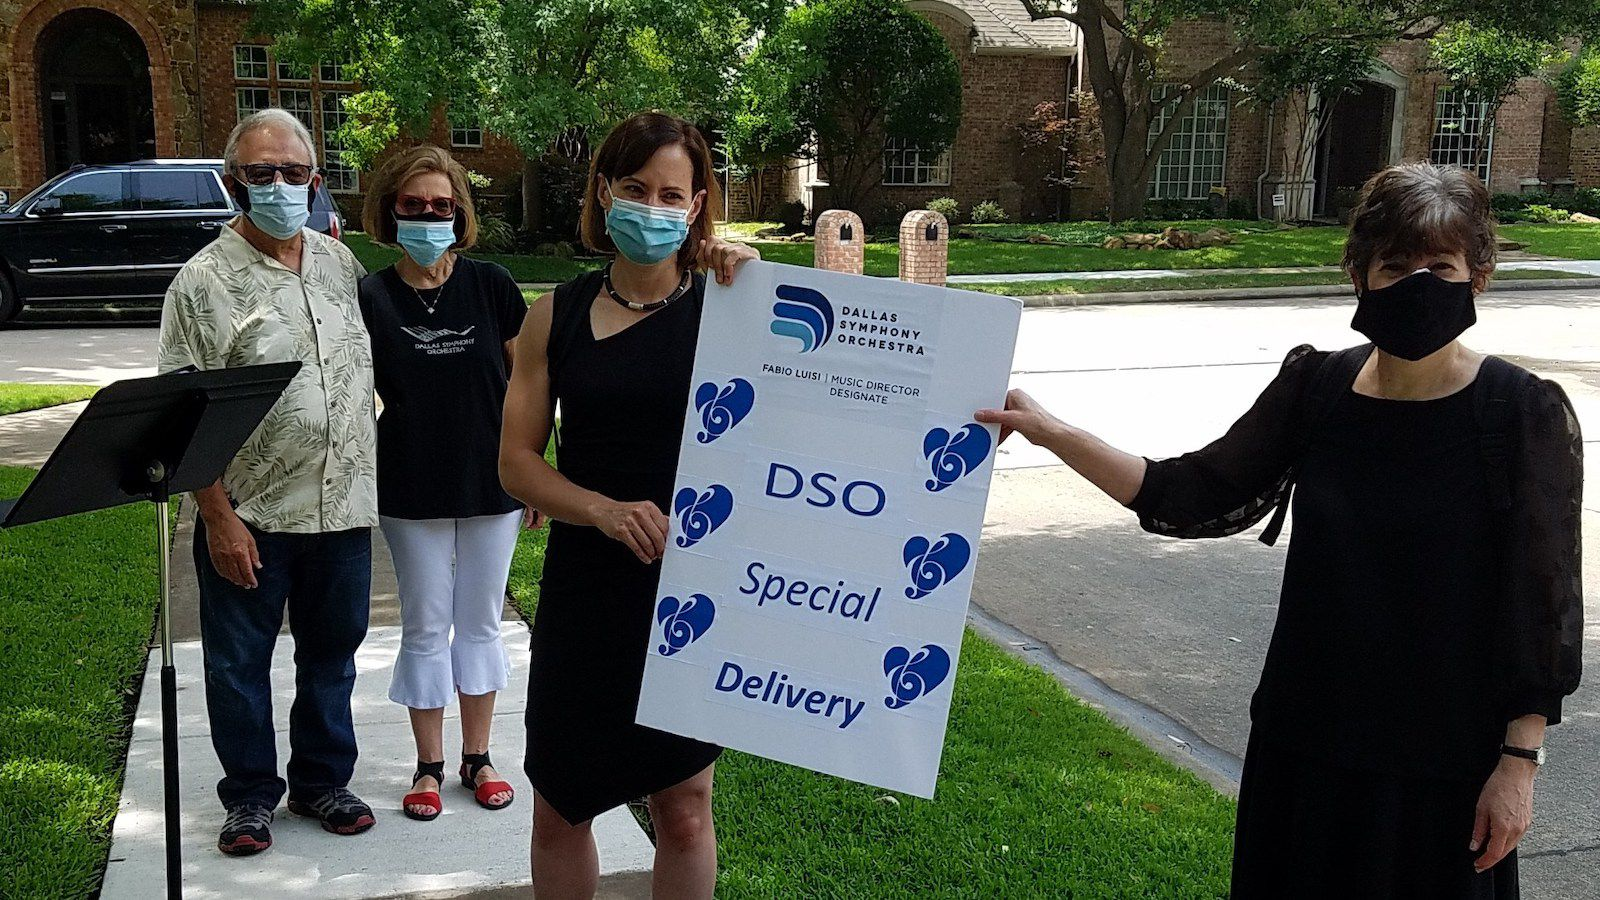 Through a program called Special Delivery, Dallas residents could request visits from Dallas Symphony Orchestra musicians for private, distanced concerts.